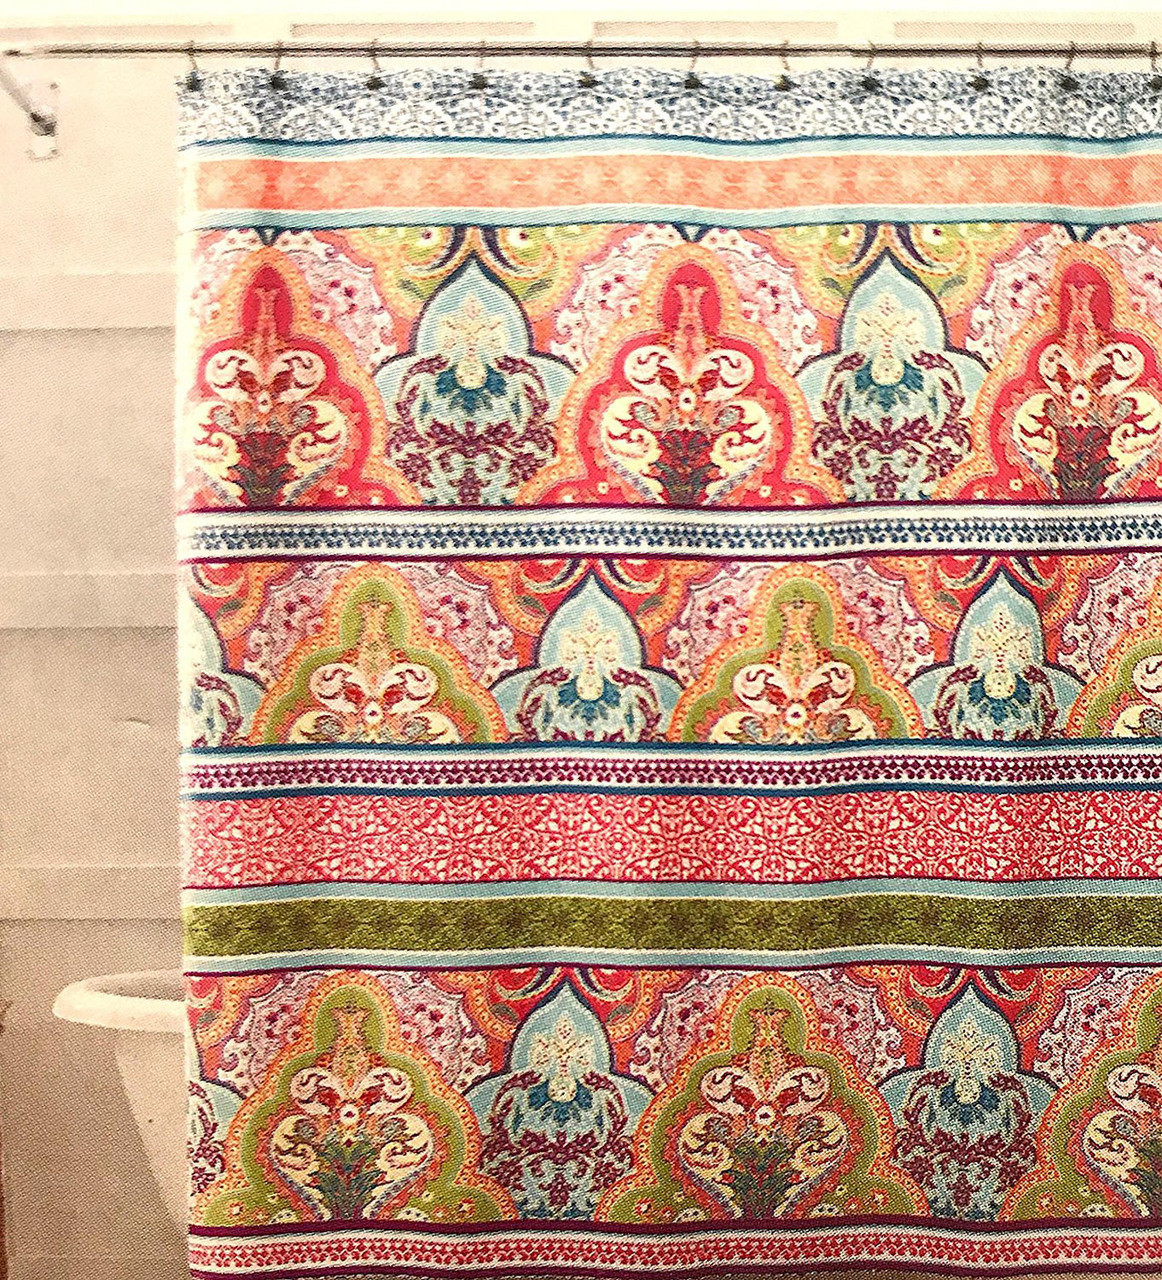 Blue Pink Green Boho Fabric Shower Curtain Floral Damask With Geometric Border Design Multi Colored 70 X 72 Inch